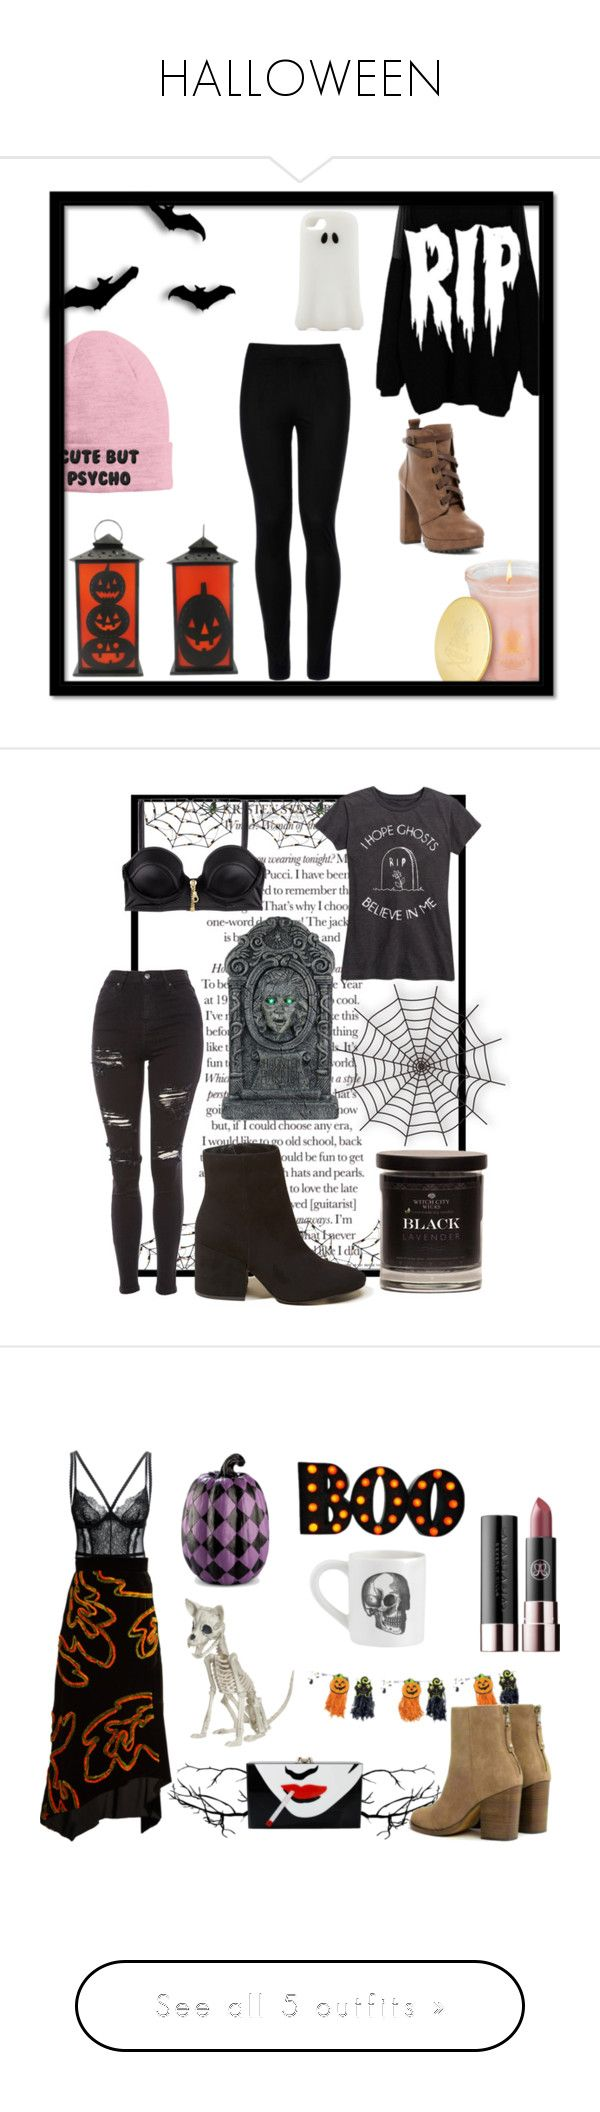 """HALLOWEEN"" by dog424lover ❤ liked on Polyvore featuring Creed, Nikki Lipstick, Daya, STELLA McCARTNEY, Wolford, H&M, Topshop, Hollister Co., rag & bone and Peter Pilotto"